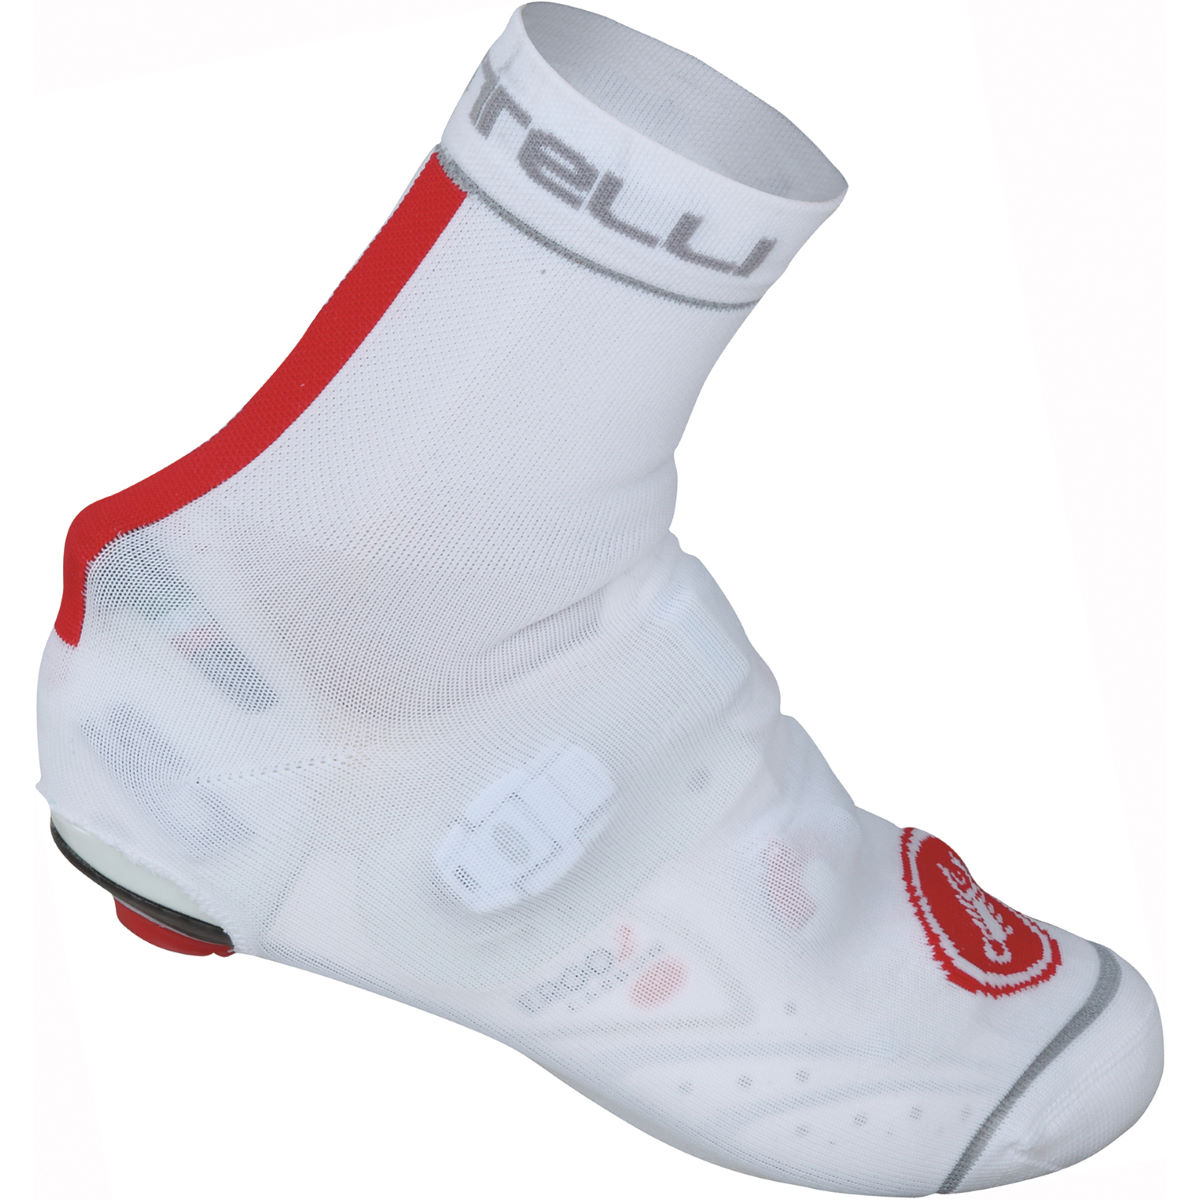 Couvre-chaussures Castelli Belgian 4 - S/M Blanc/Rouge